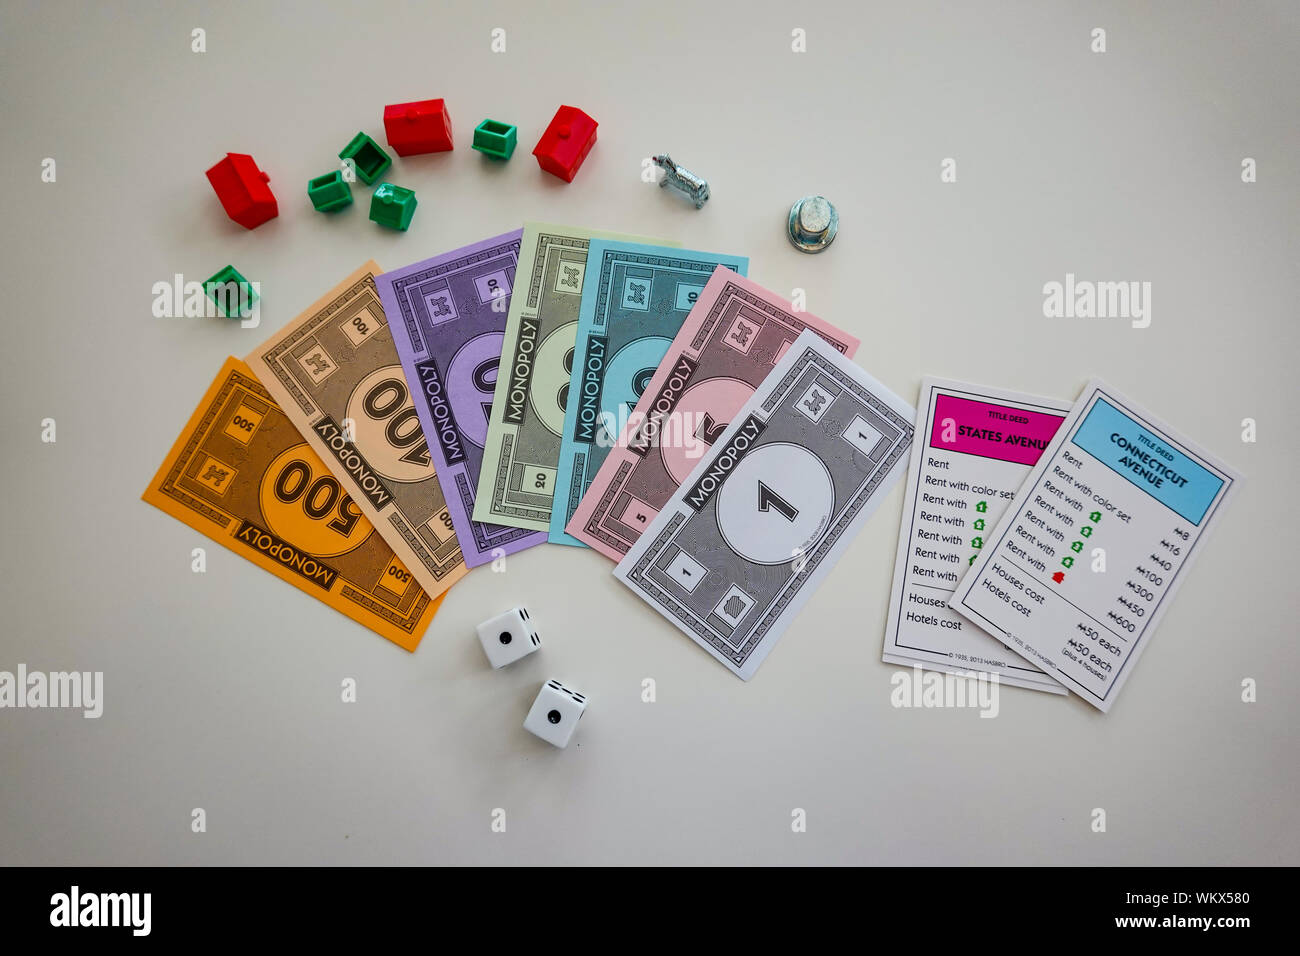 Family Board Game Night High Resolution Stock Photography And Images Alamy